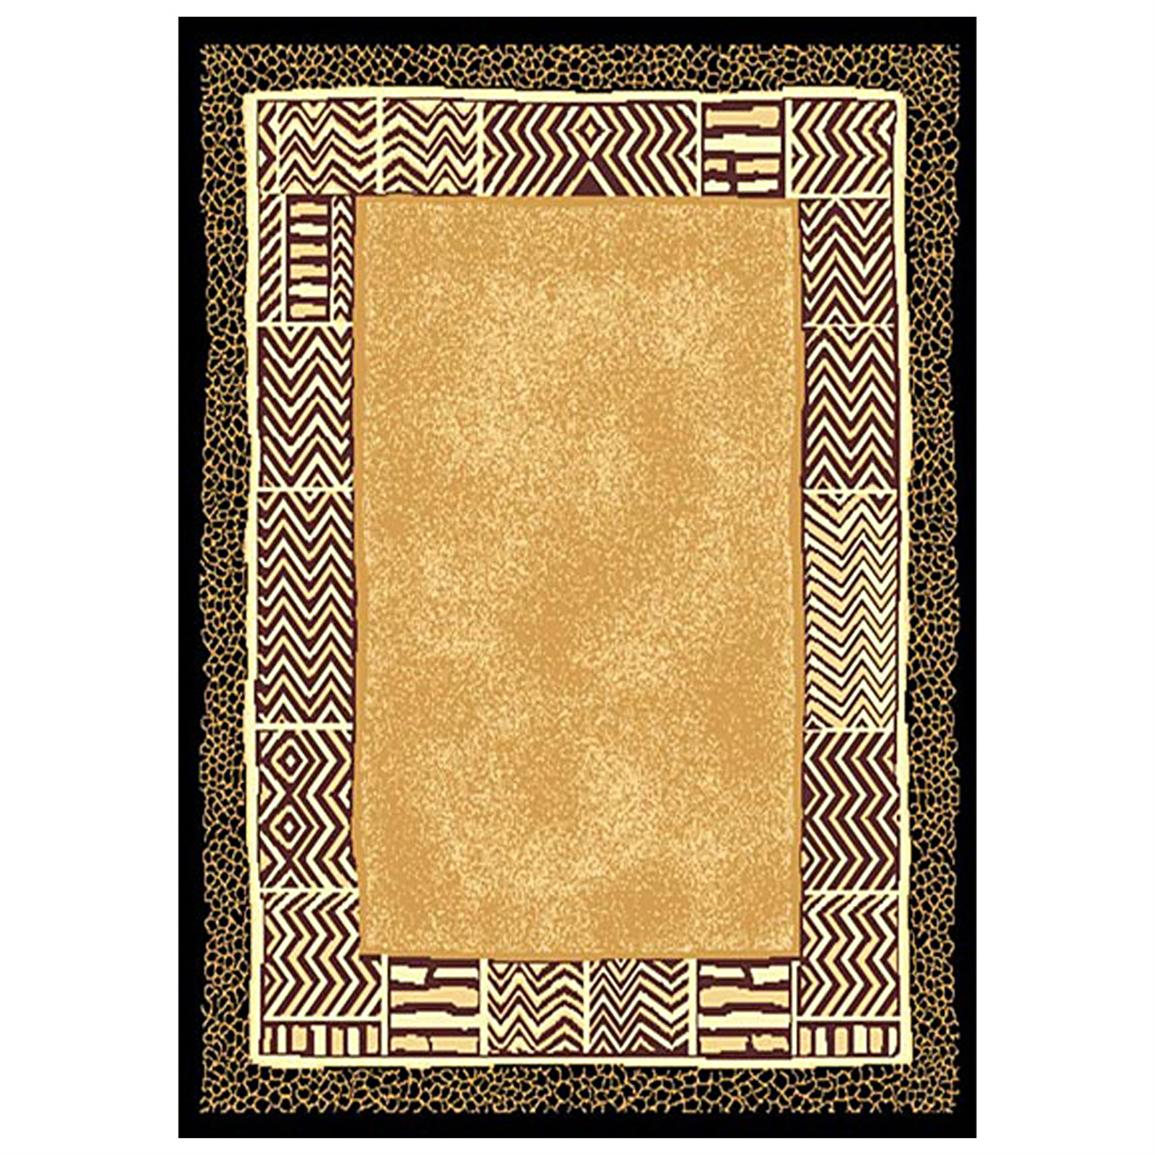 5x8' DonnieAnn® Animal Print Area Rug